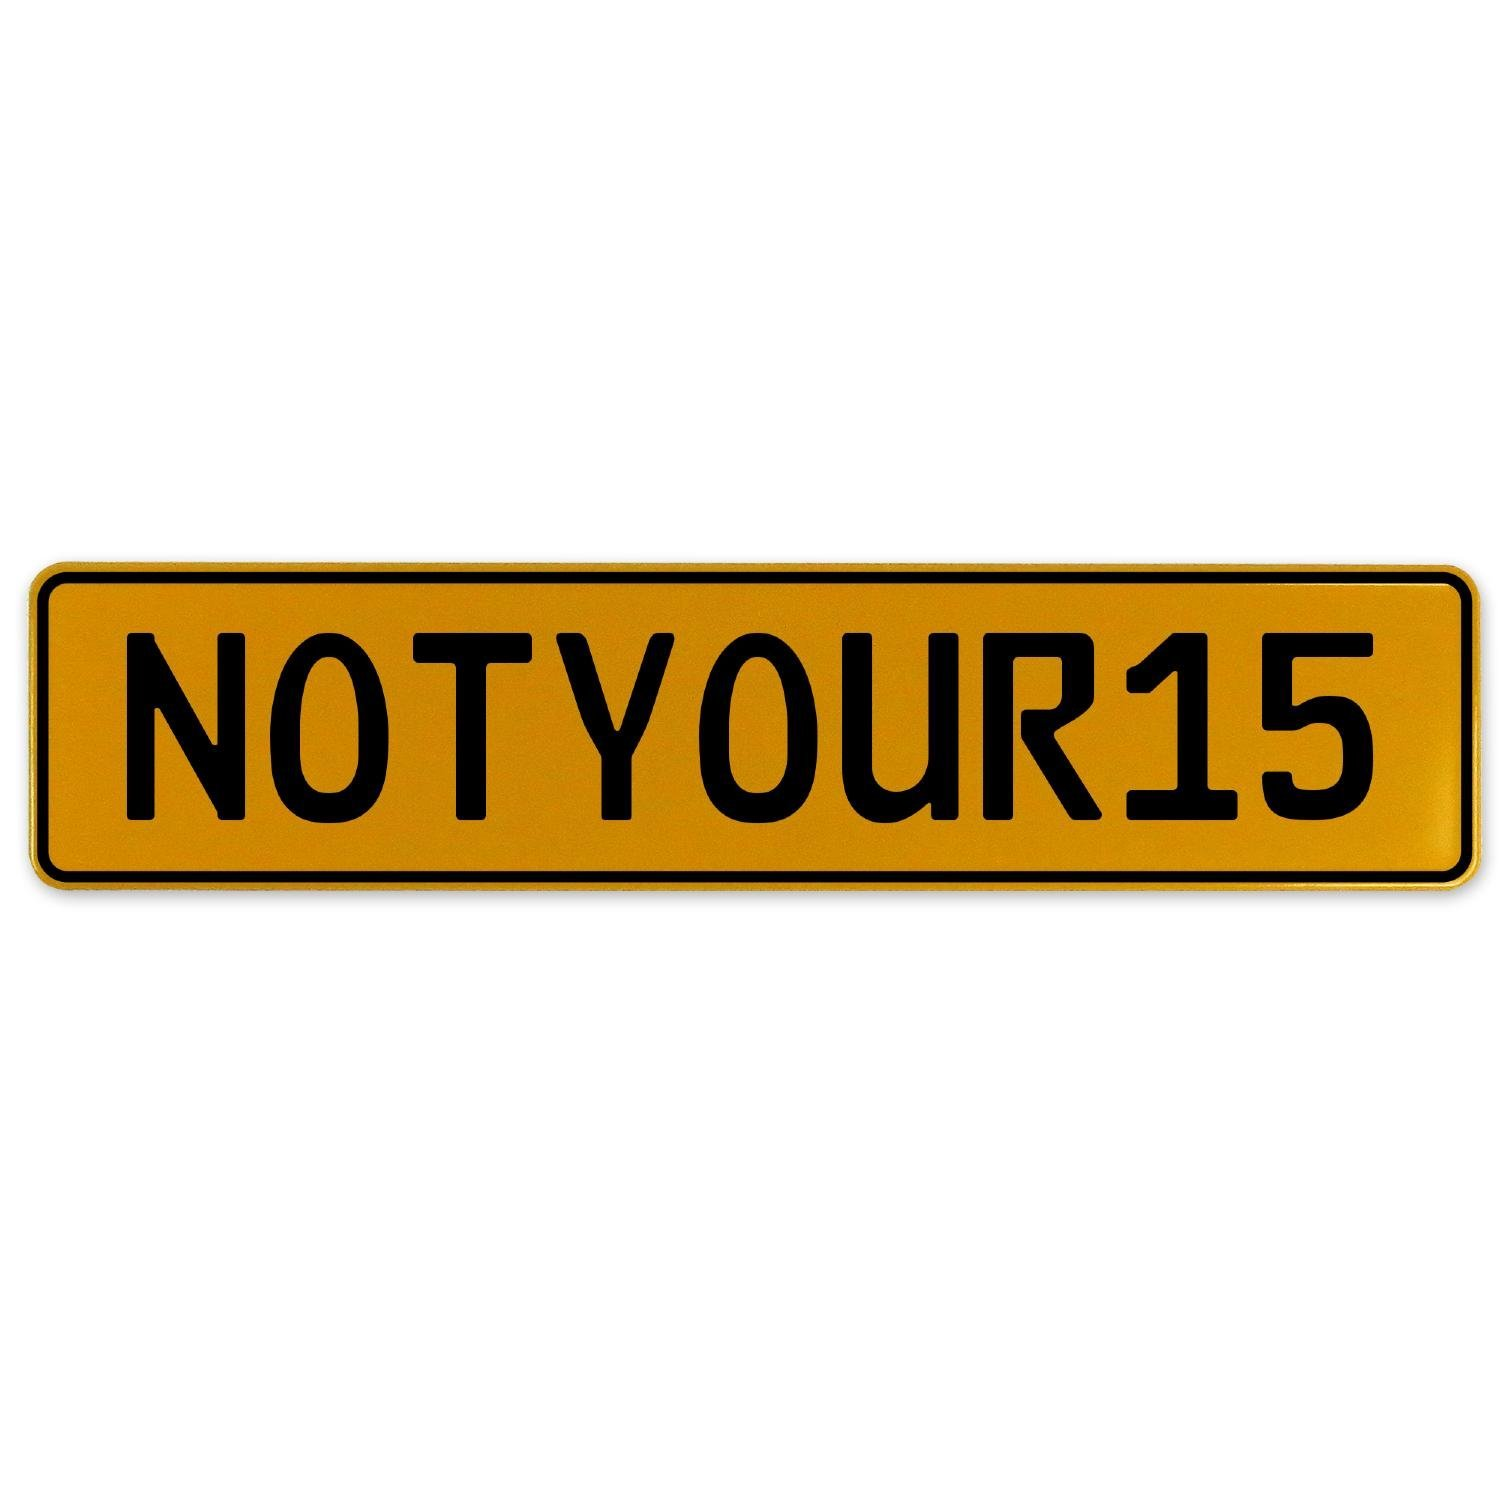 Vintage Parts 560453 NOTYOUR15 Yellow Stamped Aluminum European Plate